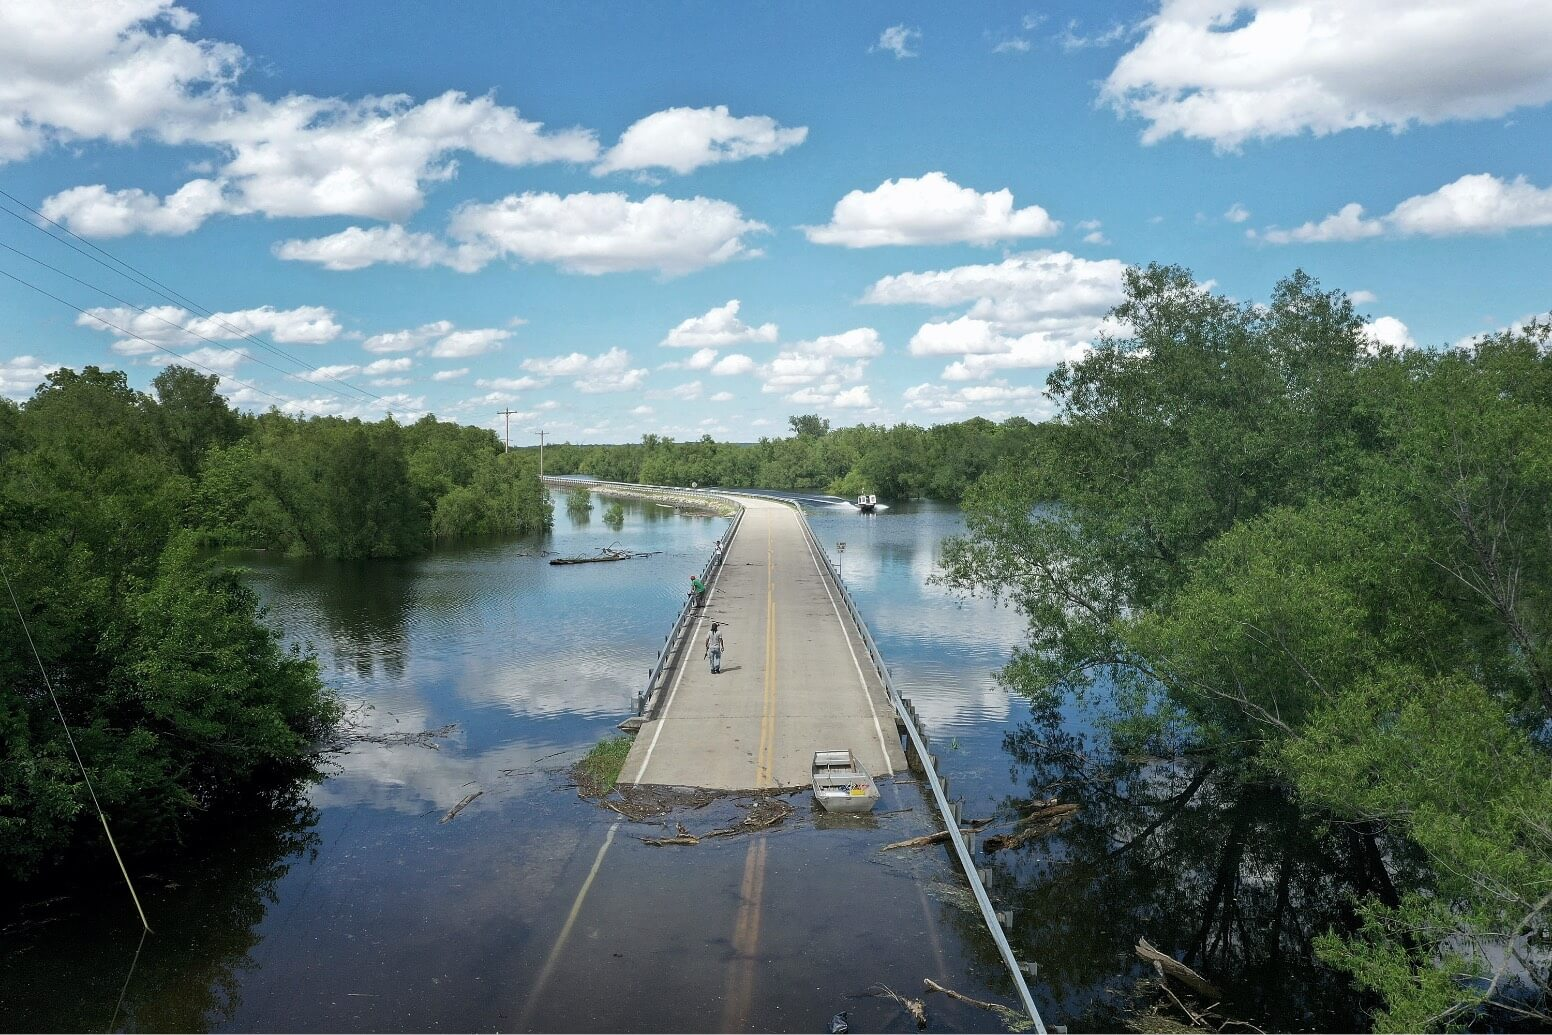 Floodwater from the Mississippi River cuts off the roadway from Missouri into Illinois at the states' border on May 30, 2019 in Saint Mary, Missouri.